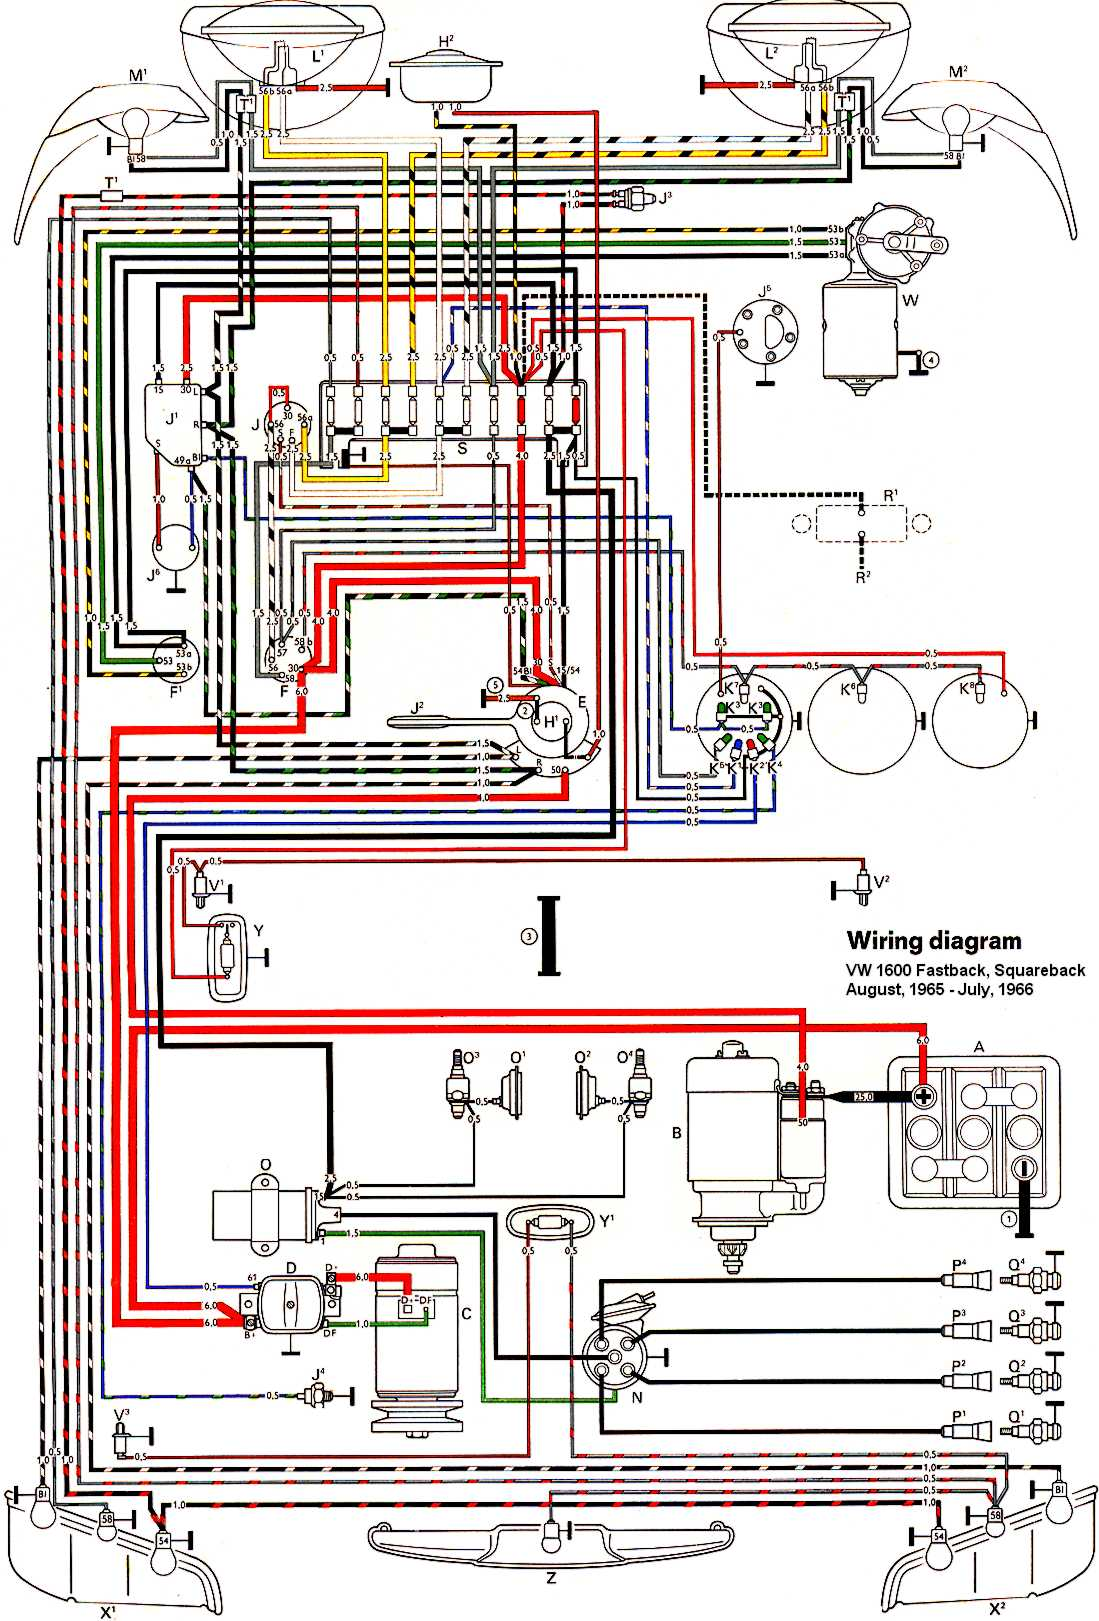 type3_1600_66 thesamba com type 3 wiring diagrams find wiring diagram for 87 ford f 150 at eliteediting.co